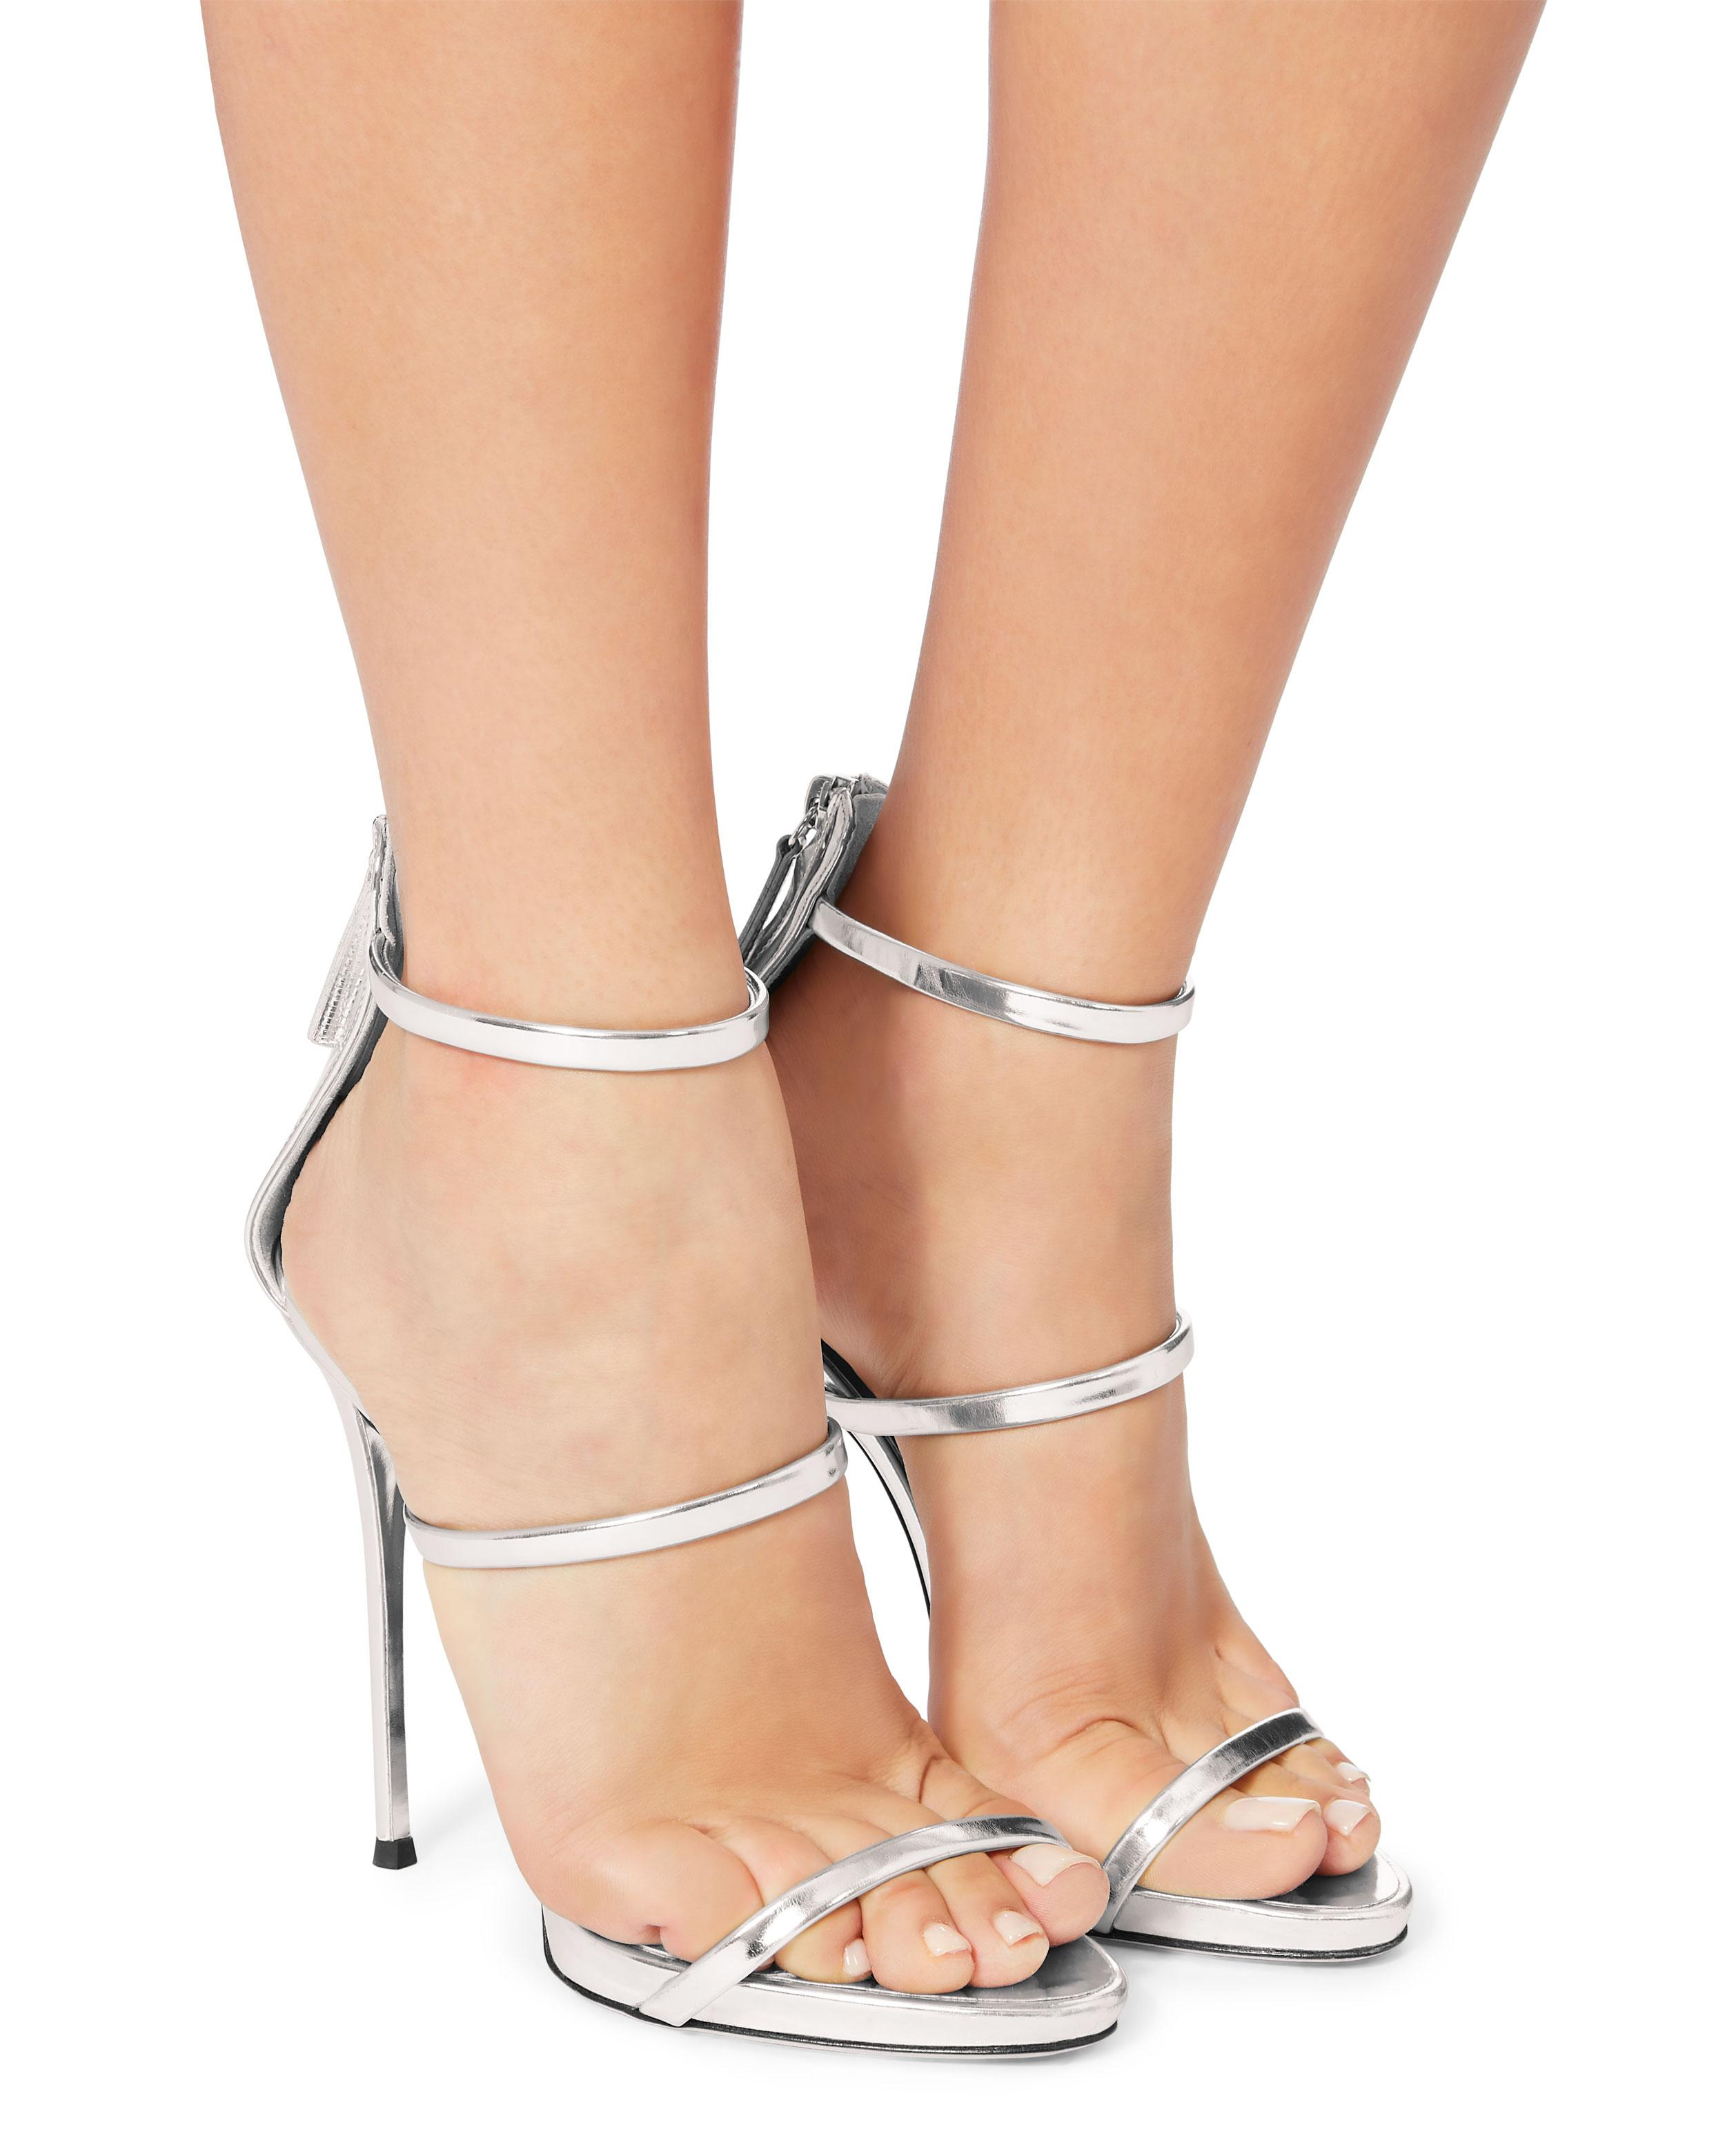 5262f42323e8 ... czech lyst giuseppe zanotti harmony 120 silver metallic leather sandals  in metallic save 42.72189349112426 d5ce9 8aa9a